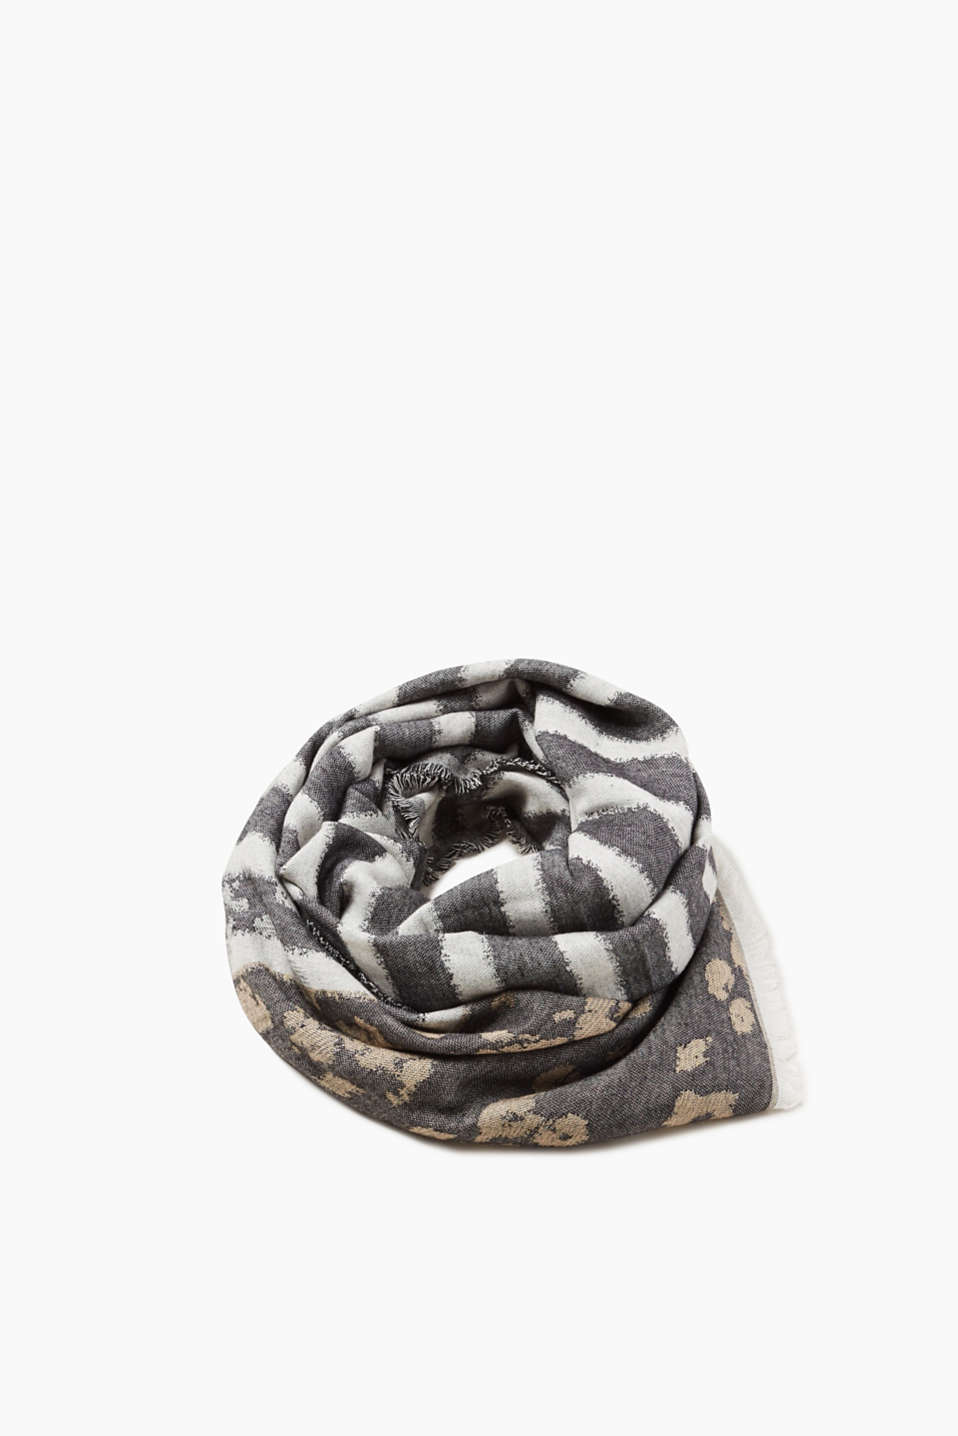 A cool mix of patterns: leopard or stripes make this scarf a cool head-turner.